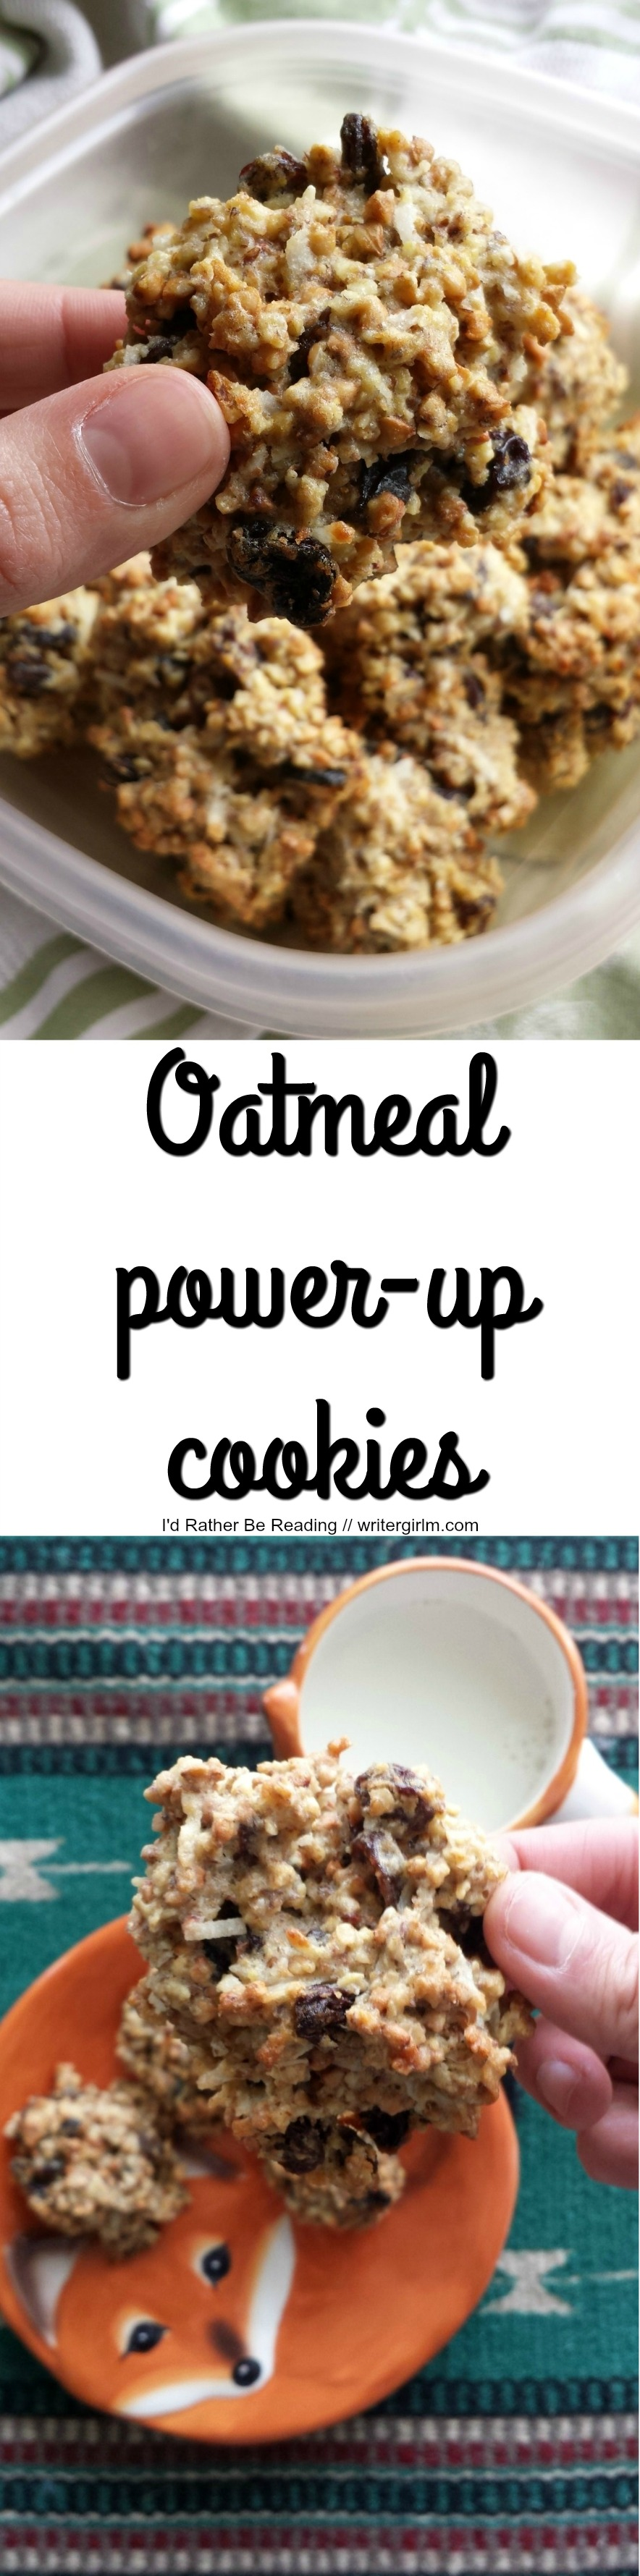 These aren't your childhood oatmeal cookies! Packed with added nutrients and with half the sugar of traditional recipes, these cookies are healthy enough to sub in for a breakfast on the go.